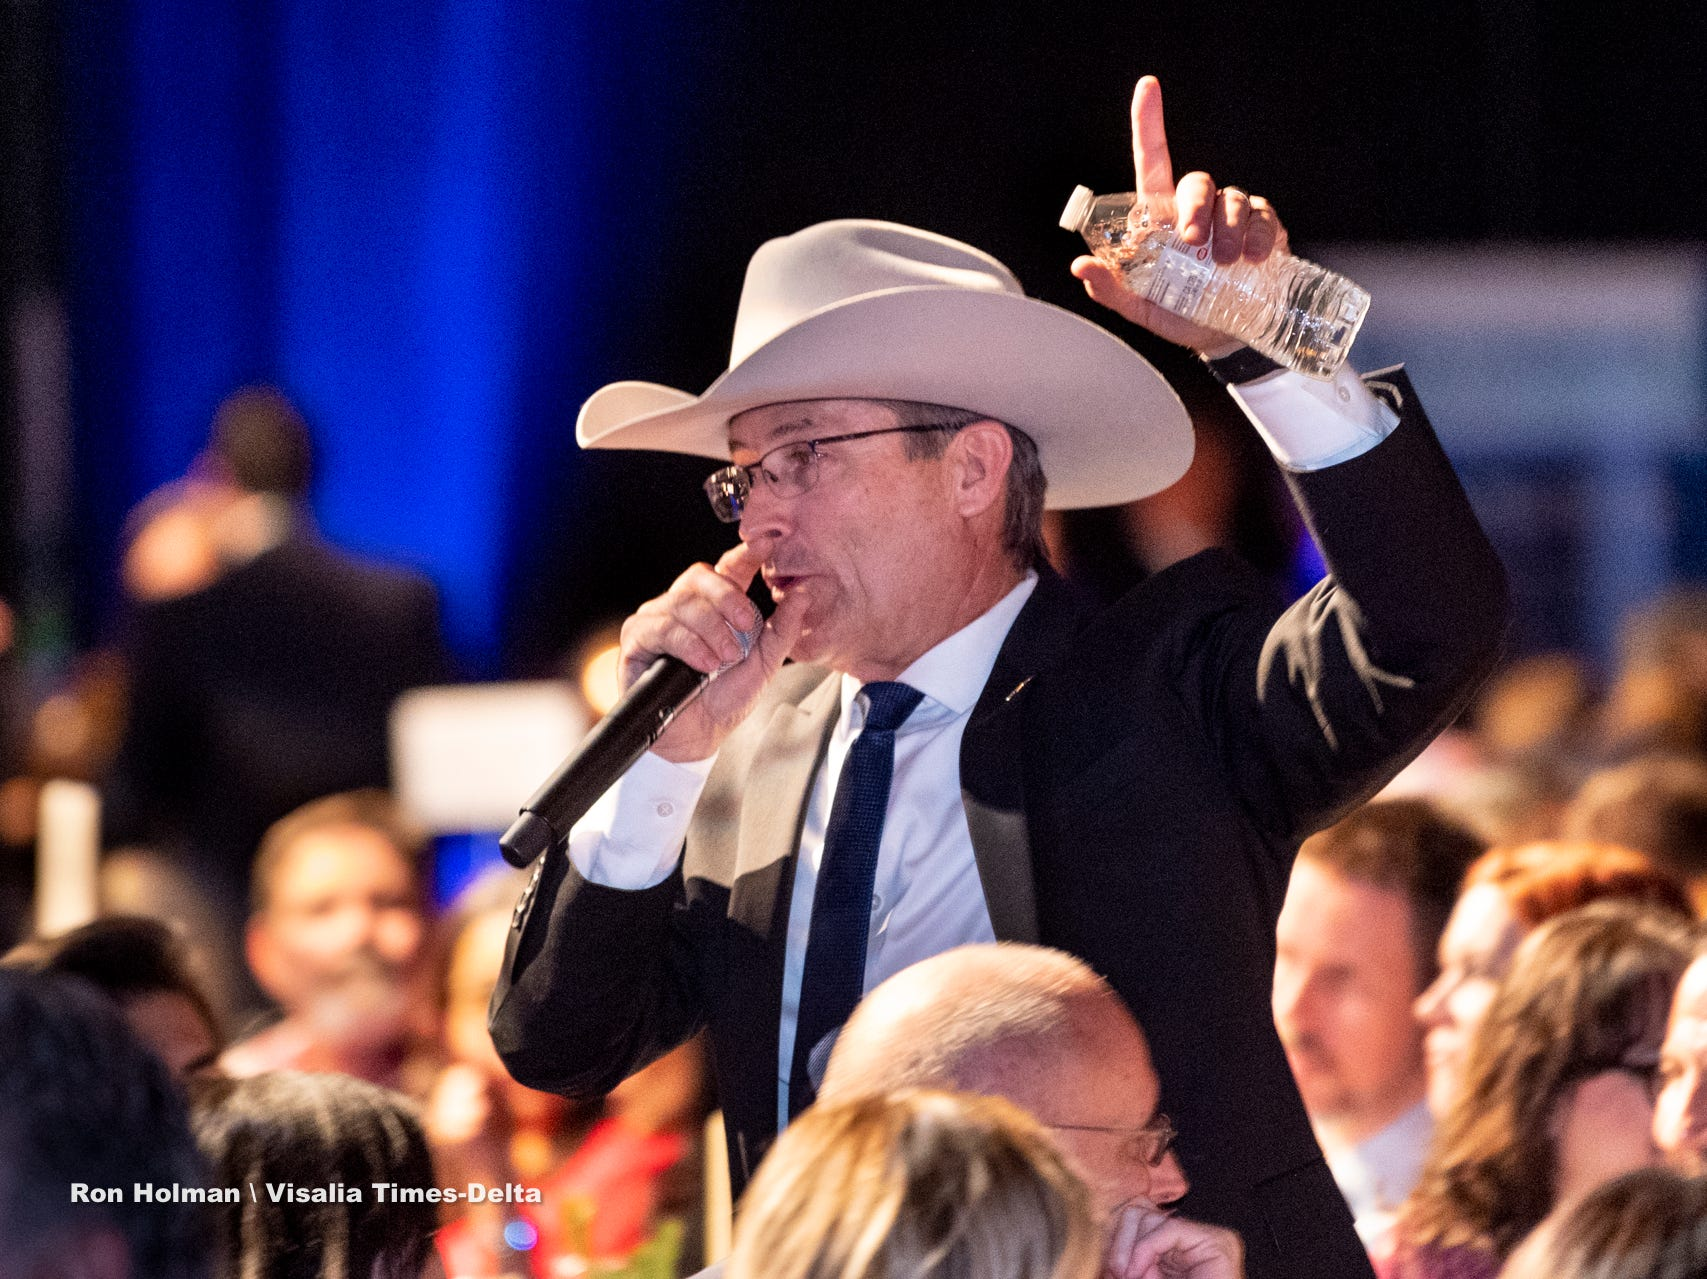 """Tulare County Sheriff Mike Boudreaux calls a tree auction during Visalia's 38th Annual Christmas Tree Auction on Friday, December 7, 2018. This year's theme was """"A Holiday Affair."""" The live auctions alone generated nearly $60,000 in bids."""